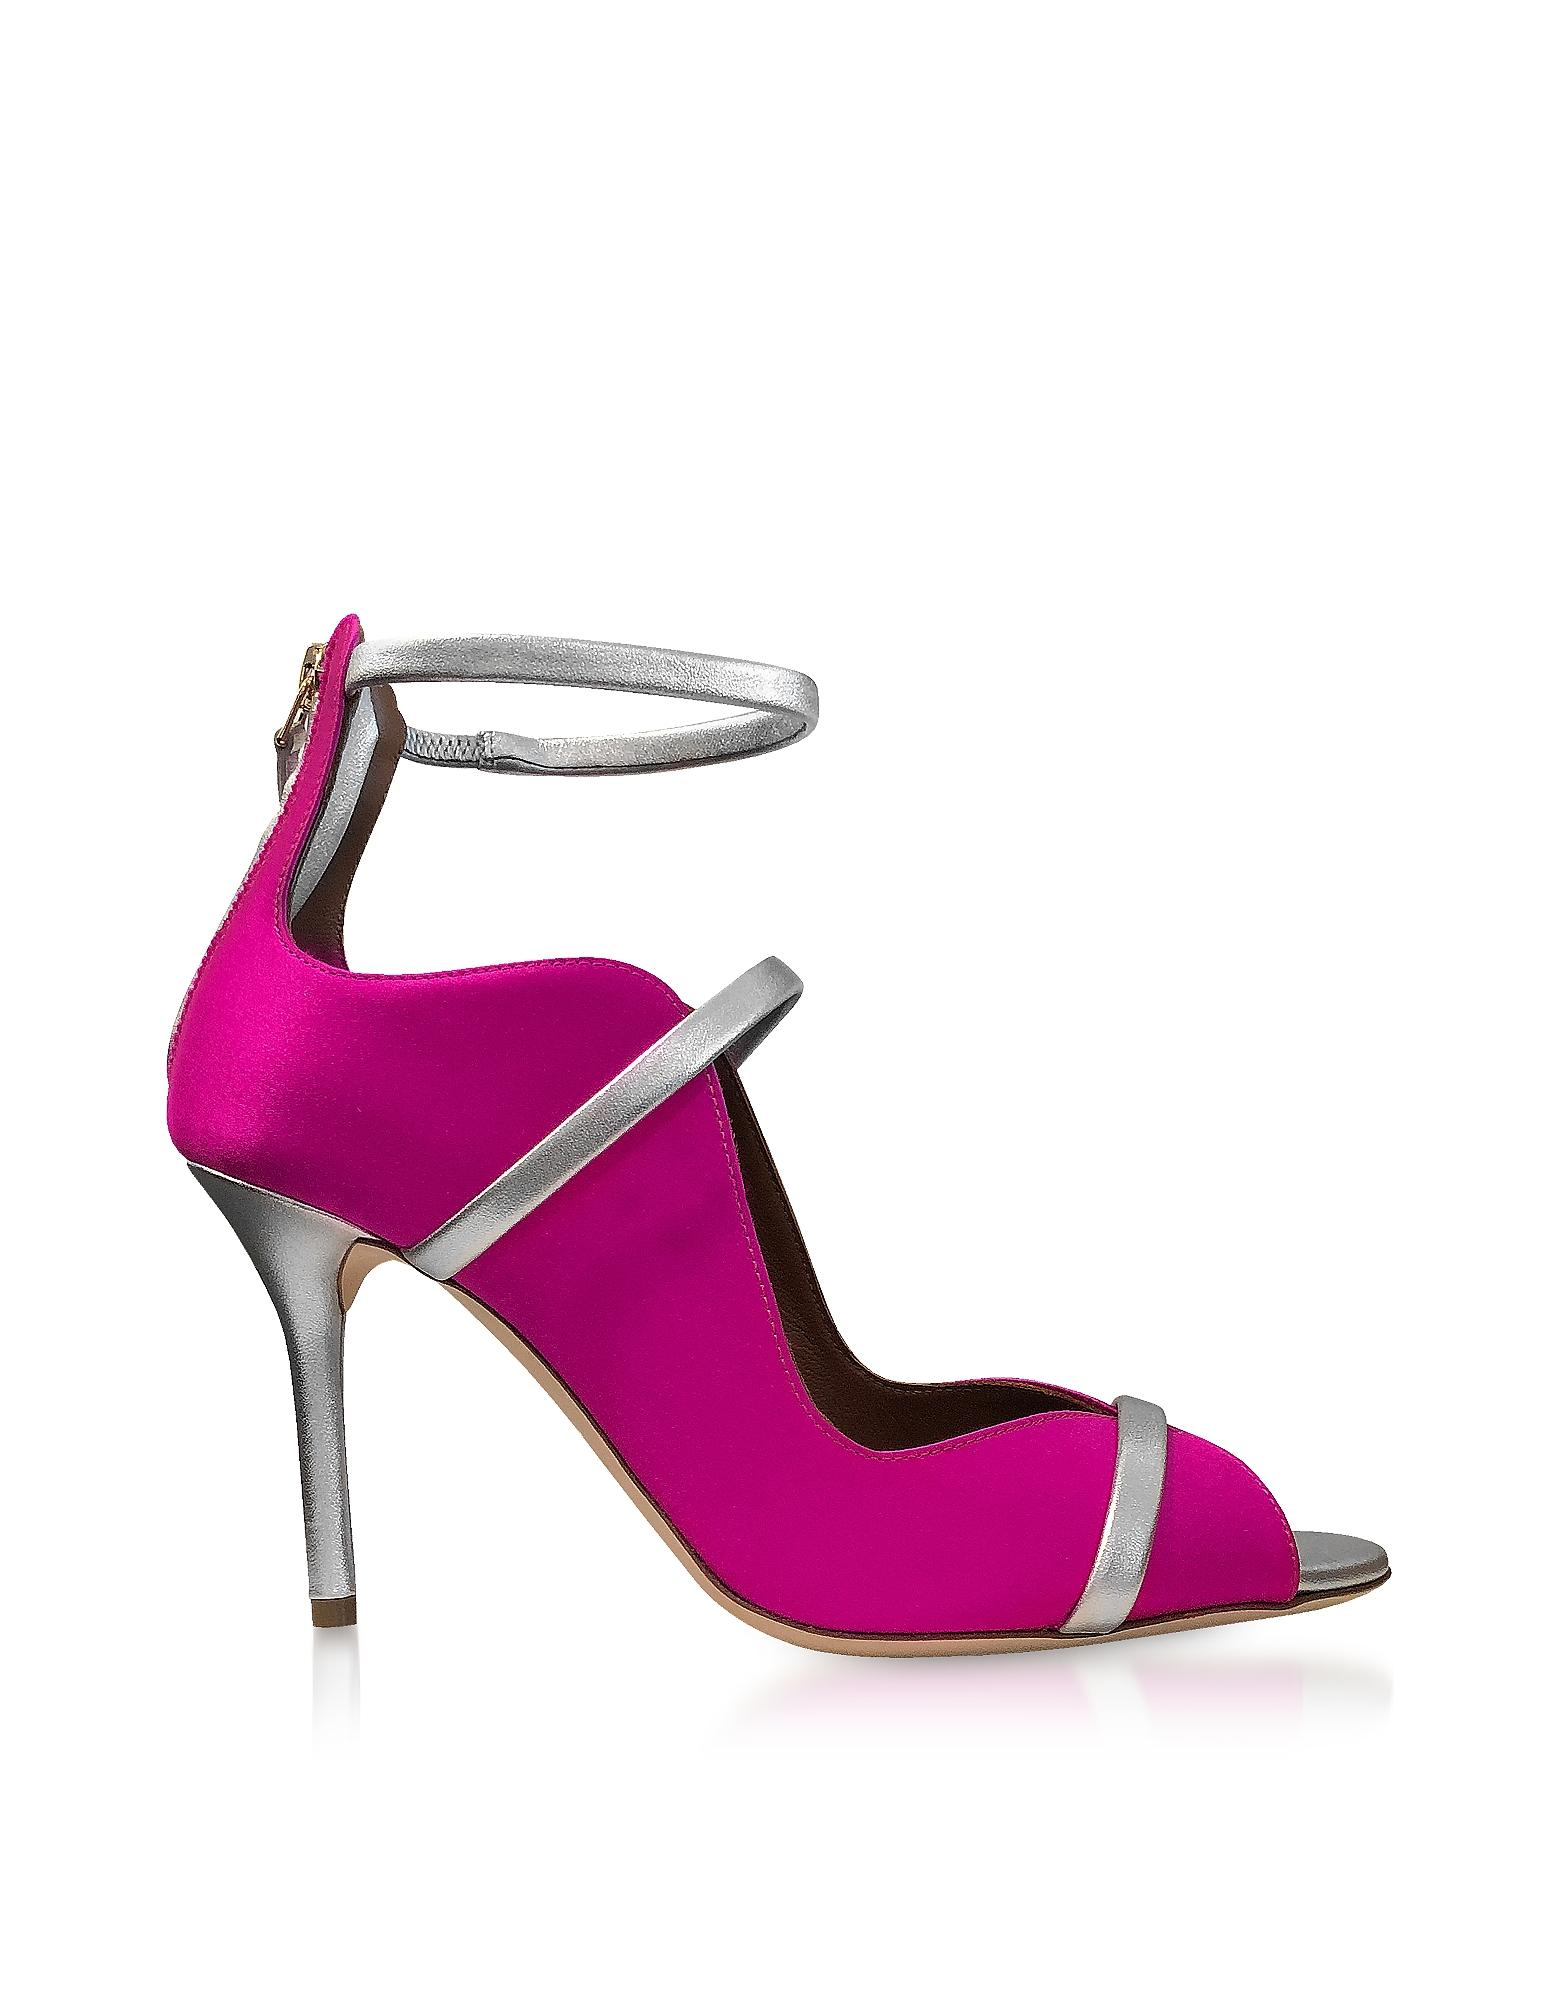 6ad09b56b351 Malone Souliers Mika 85 Fuchsia Satin And Metallic Leather High Heel Sandals  In Pink